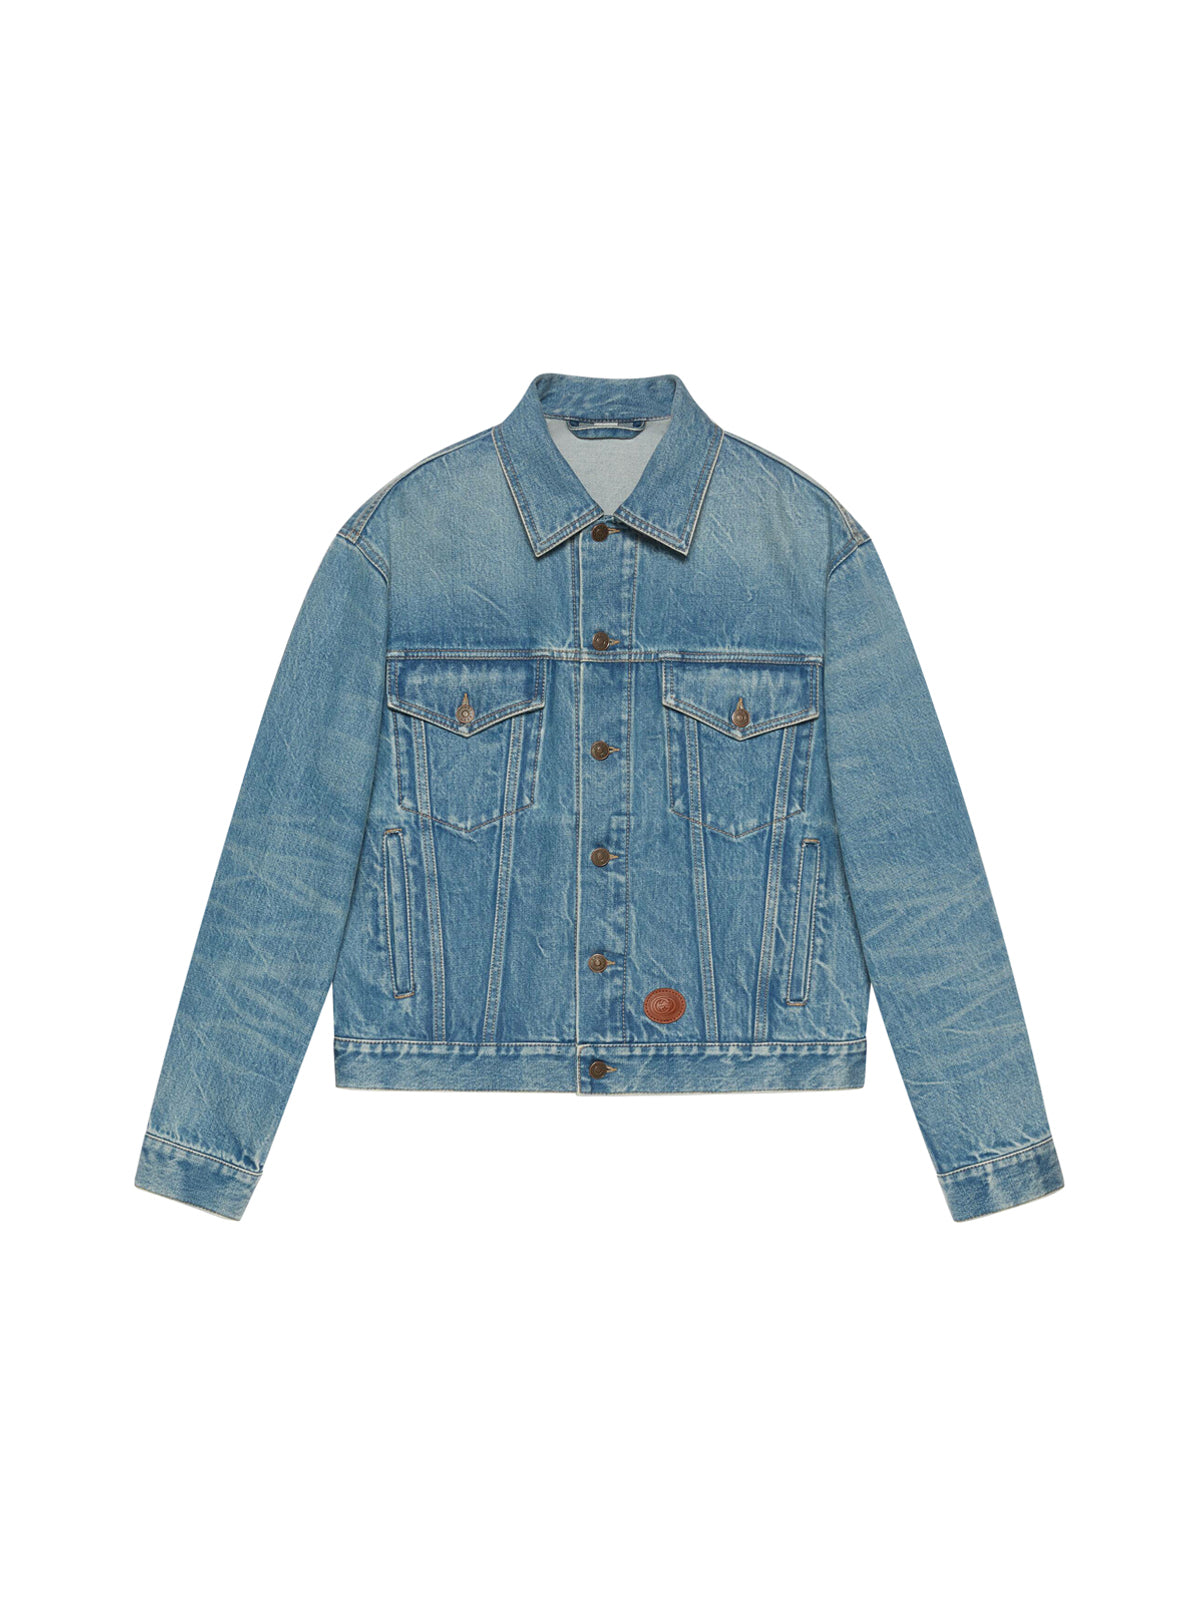 Donald Duck Disney x Gucci denim jacket in délavé effect with eco treatment